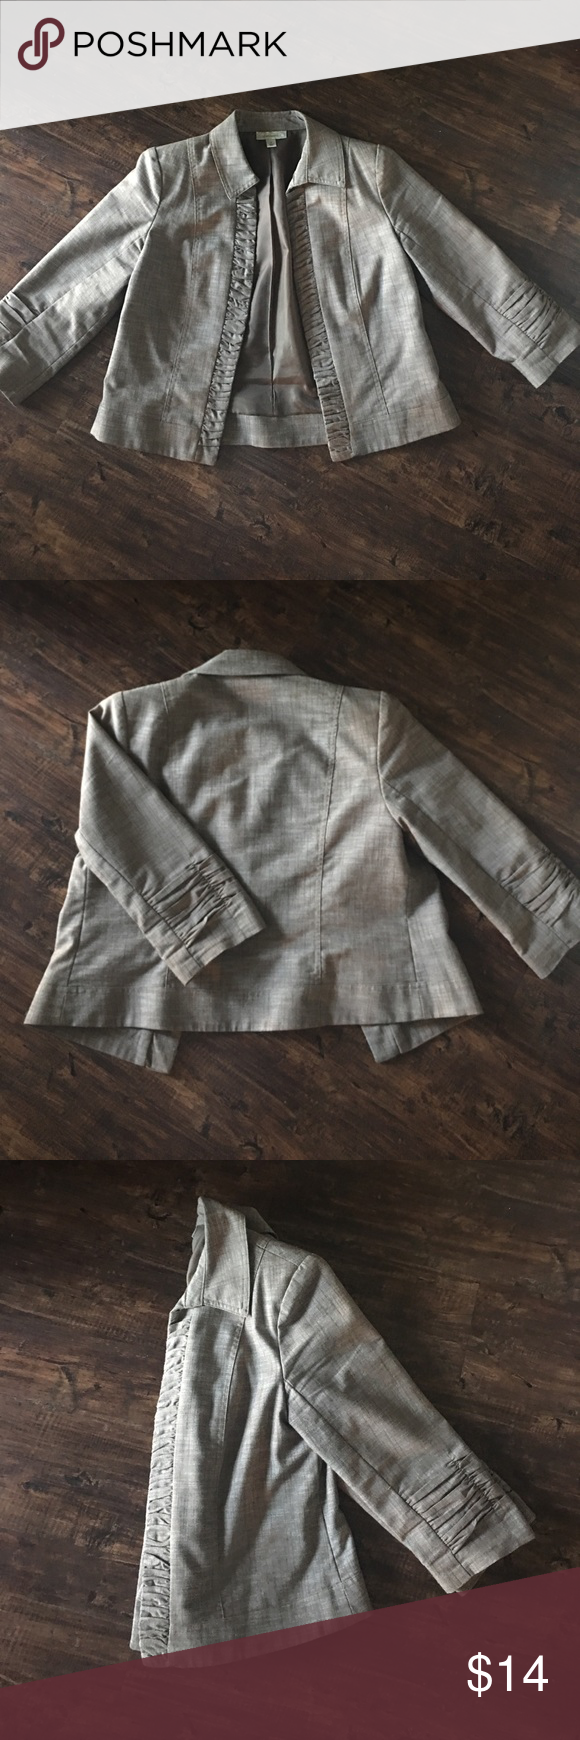 Brown blazer Brown structured blazer. Shorter fit with roushed front detail and sleeves. Slight shoulder pads in order to create structure. No buttons or closures. Dress Barn Jackets & Coats Blazers